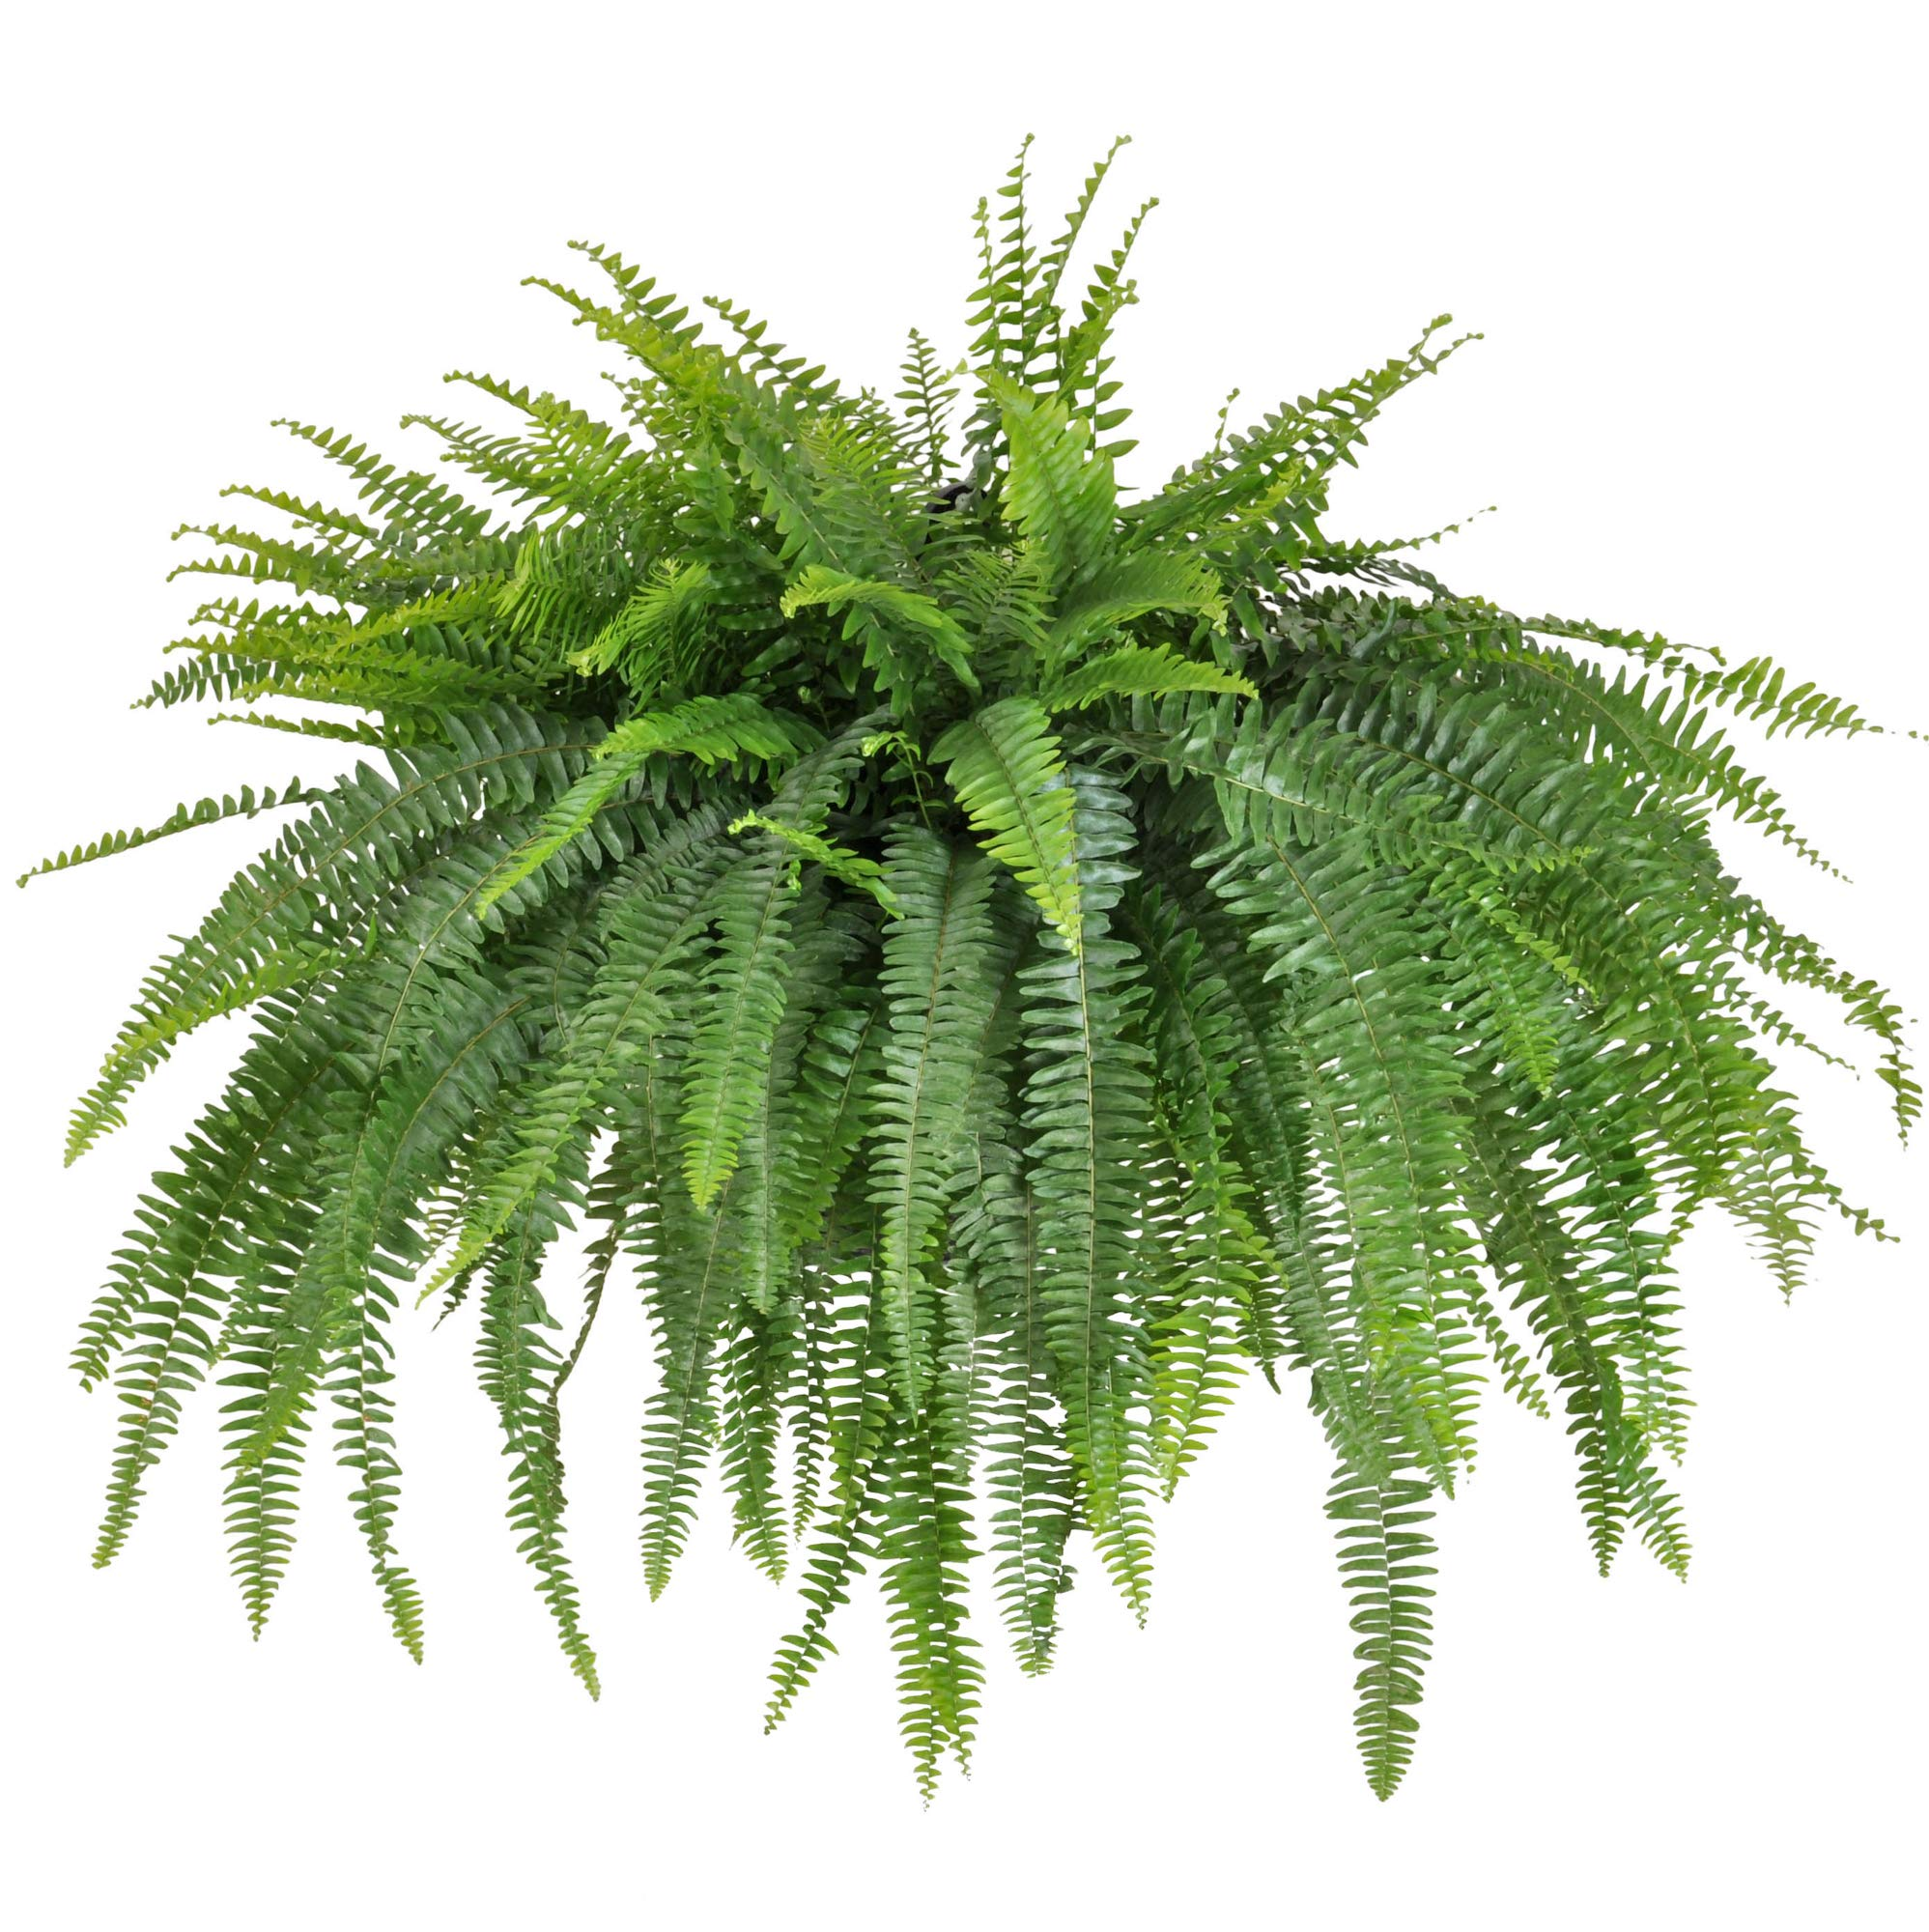 United Nursery Jumbo Boston Fern, Live Indoor and Outdoor Hanging Basket Plant 36-44 inches Shipping Size Shipped Fresh from Our Florida Farm by United Nursery (Image #1)